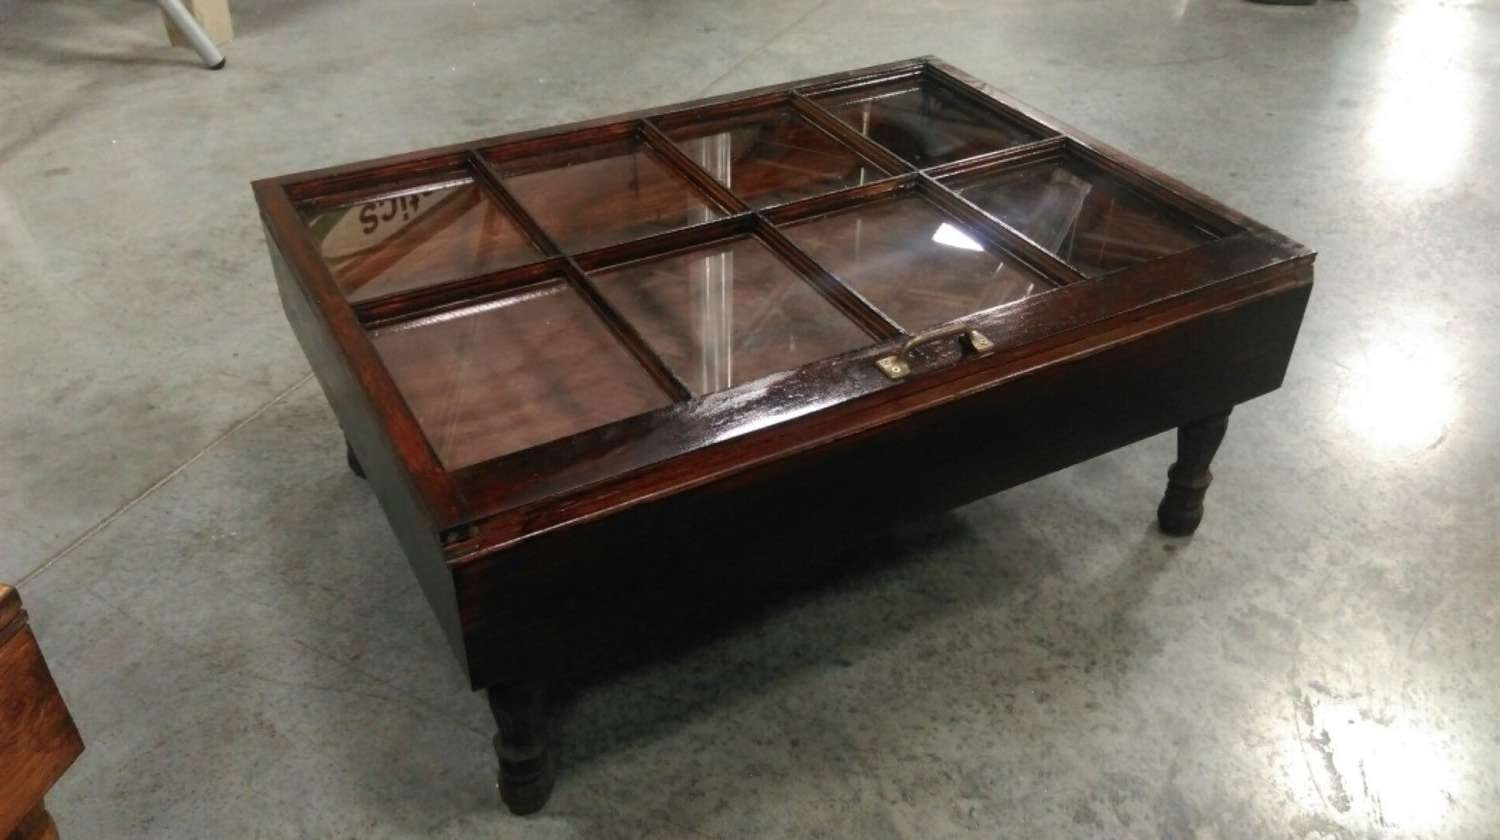 Widely Used Coffee Tables With Glass Top Display Drawer With Regard To Coffee Table R E H Kennedy Military Glass Top Display Shadow Box (View 20 of 20)